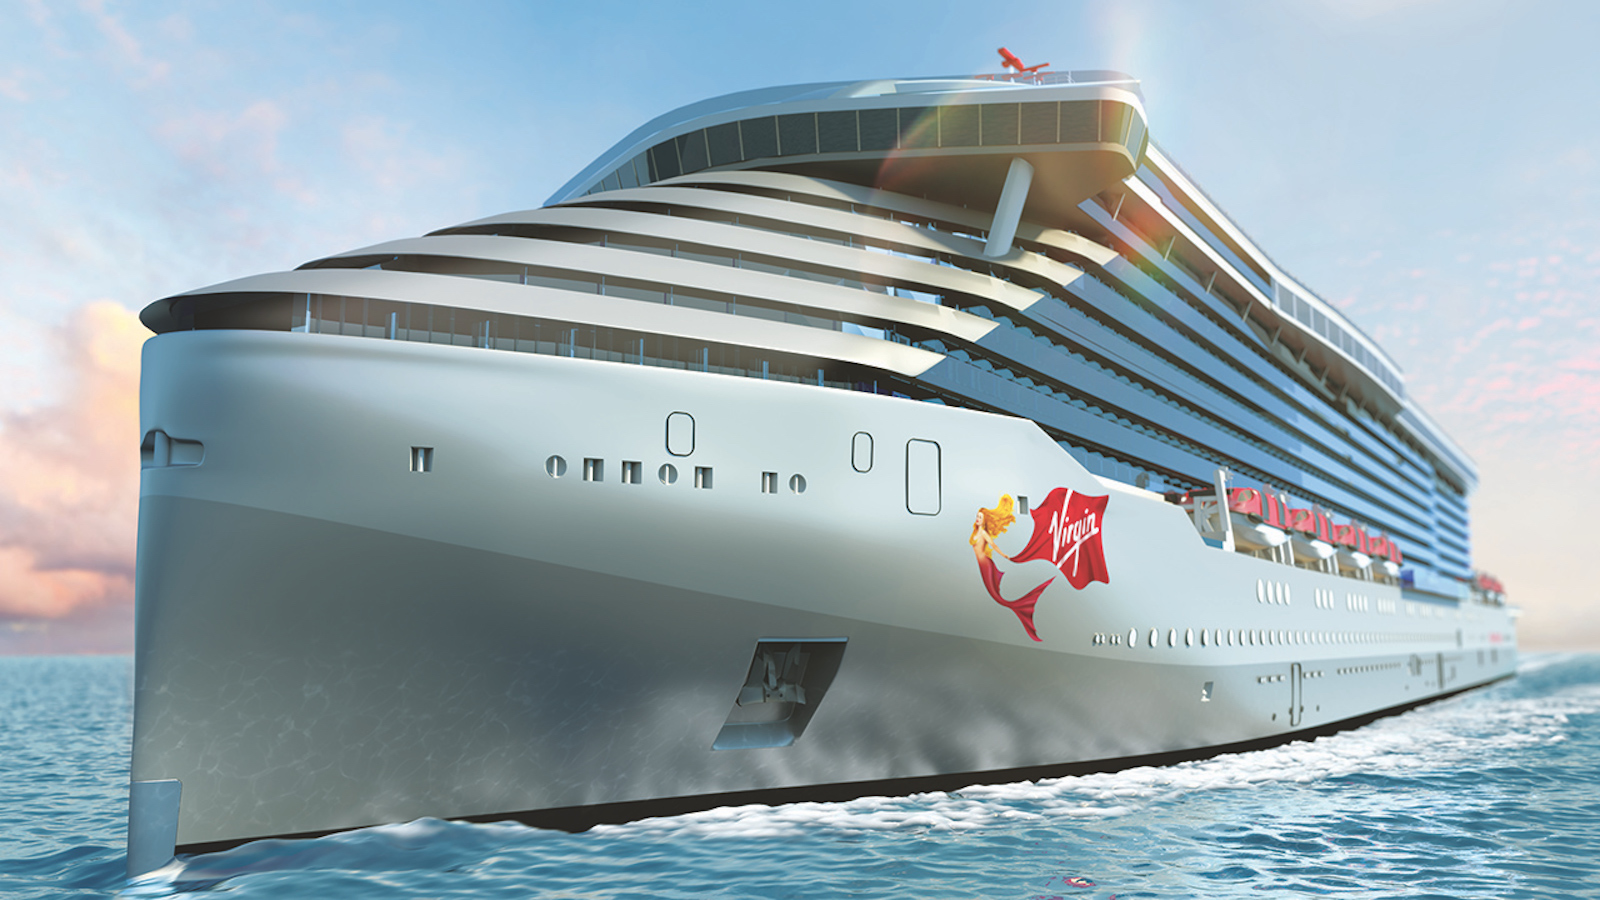 Richard Branson Launches His Luxury Adults Only Cruise Ship Wsvn 7news Miami News Weather Sports Fort Lauderdale